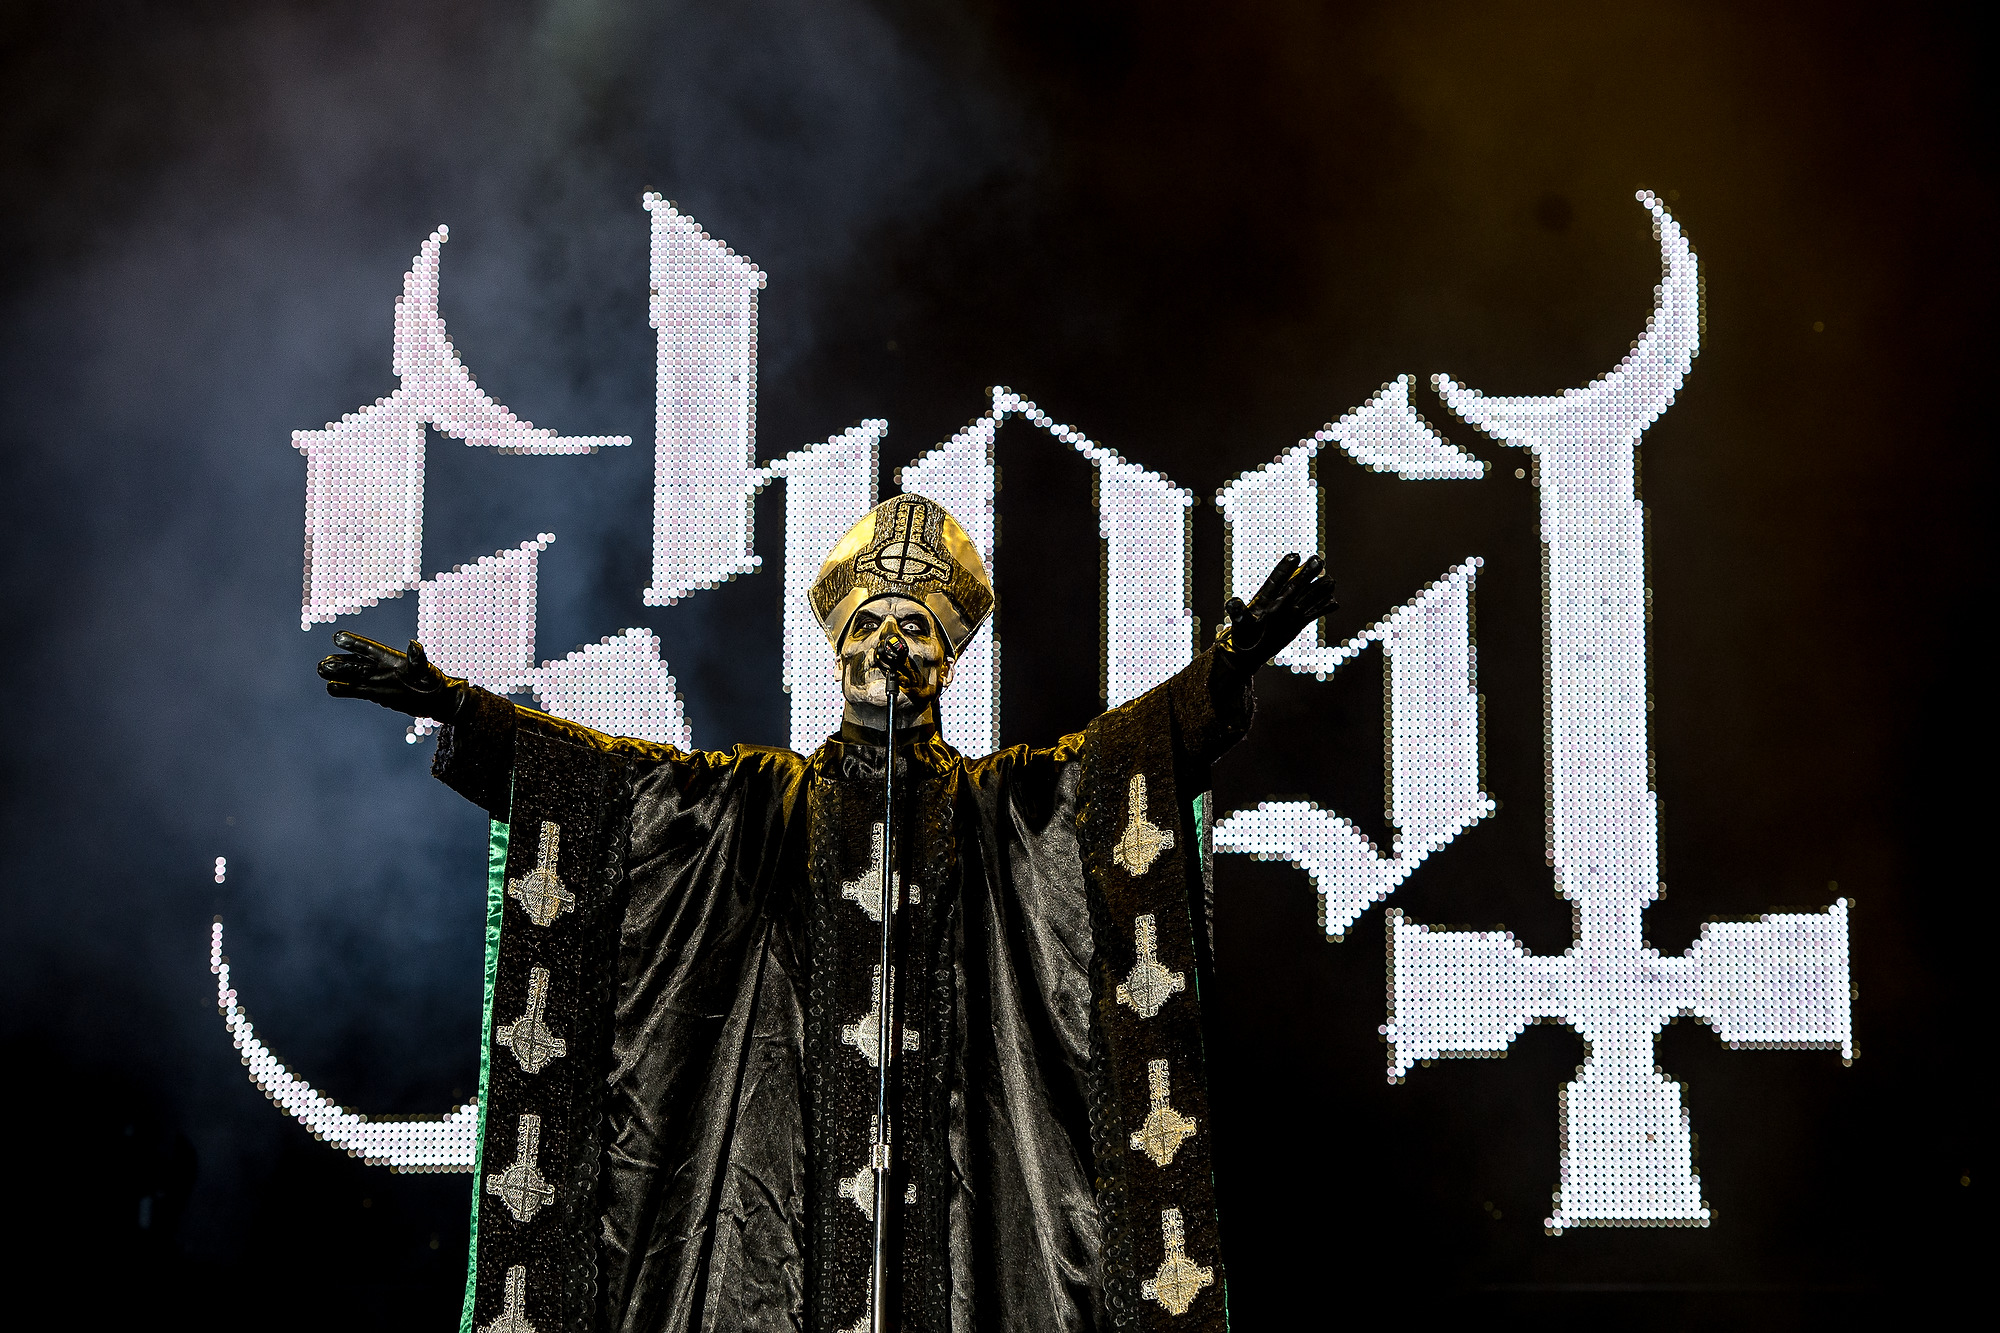 Tobias Forge of Ghost in his iconic Papa Emeritus persona. (Image Source: Getty Images)